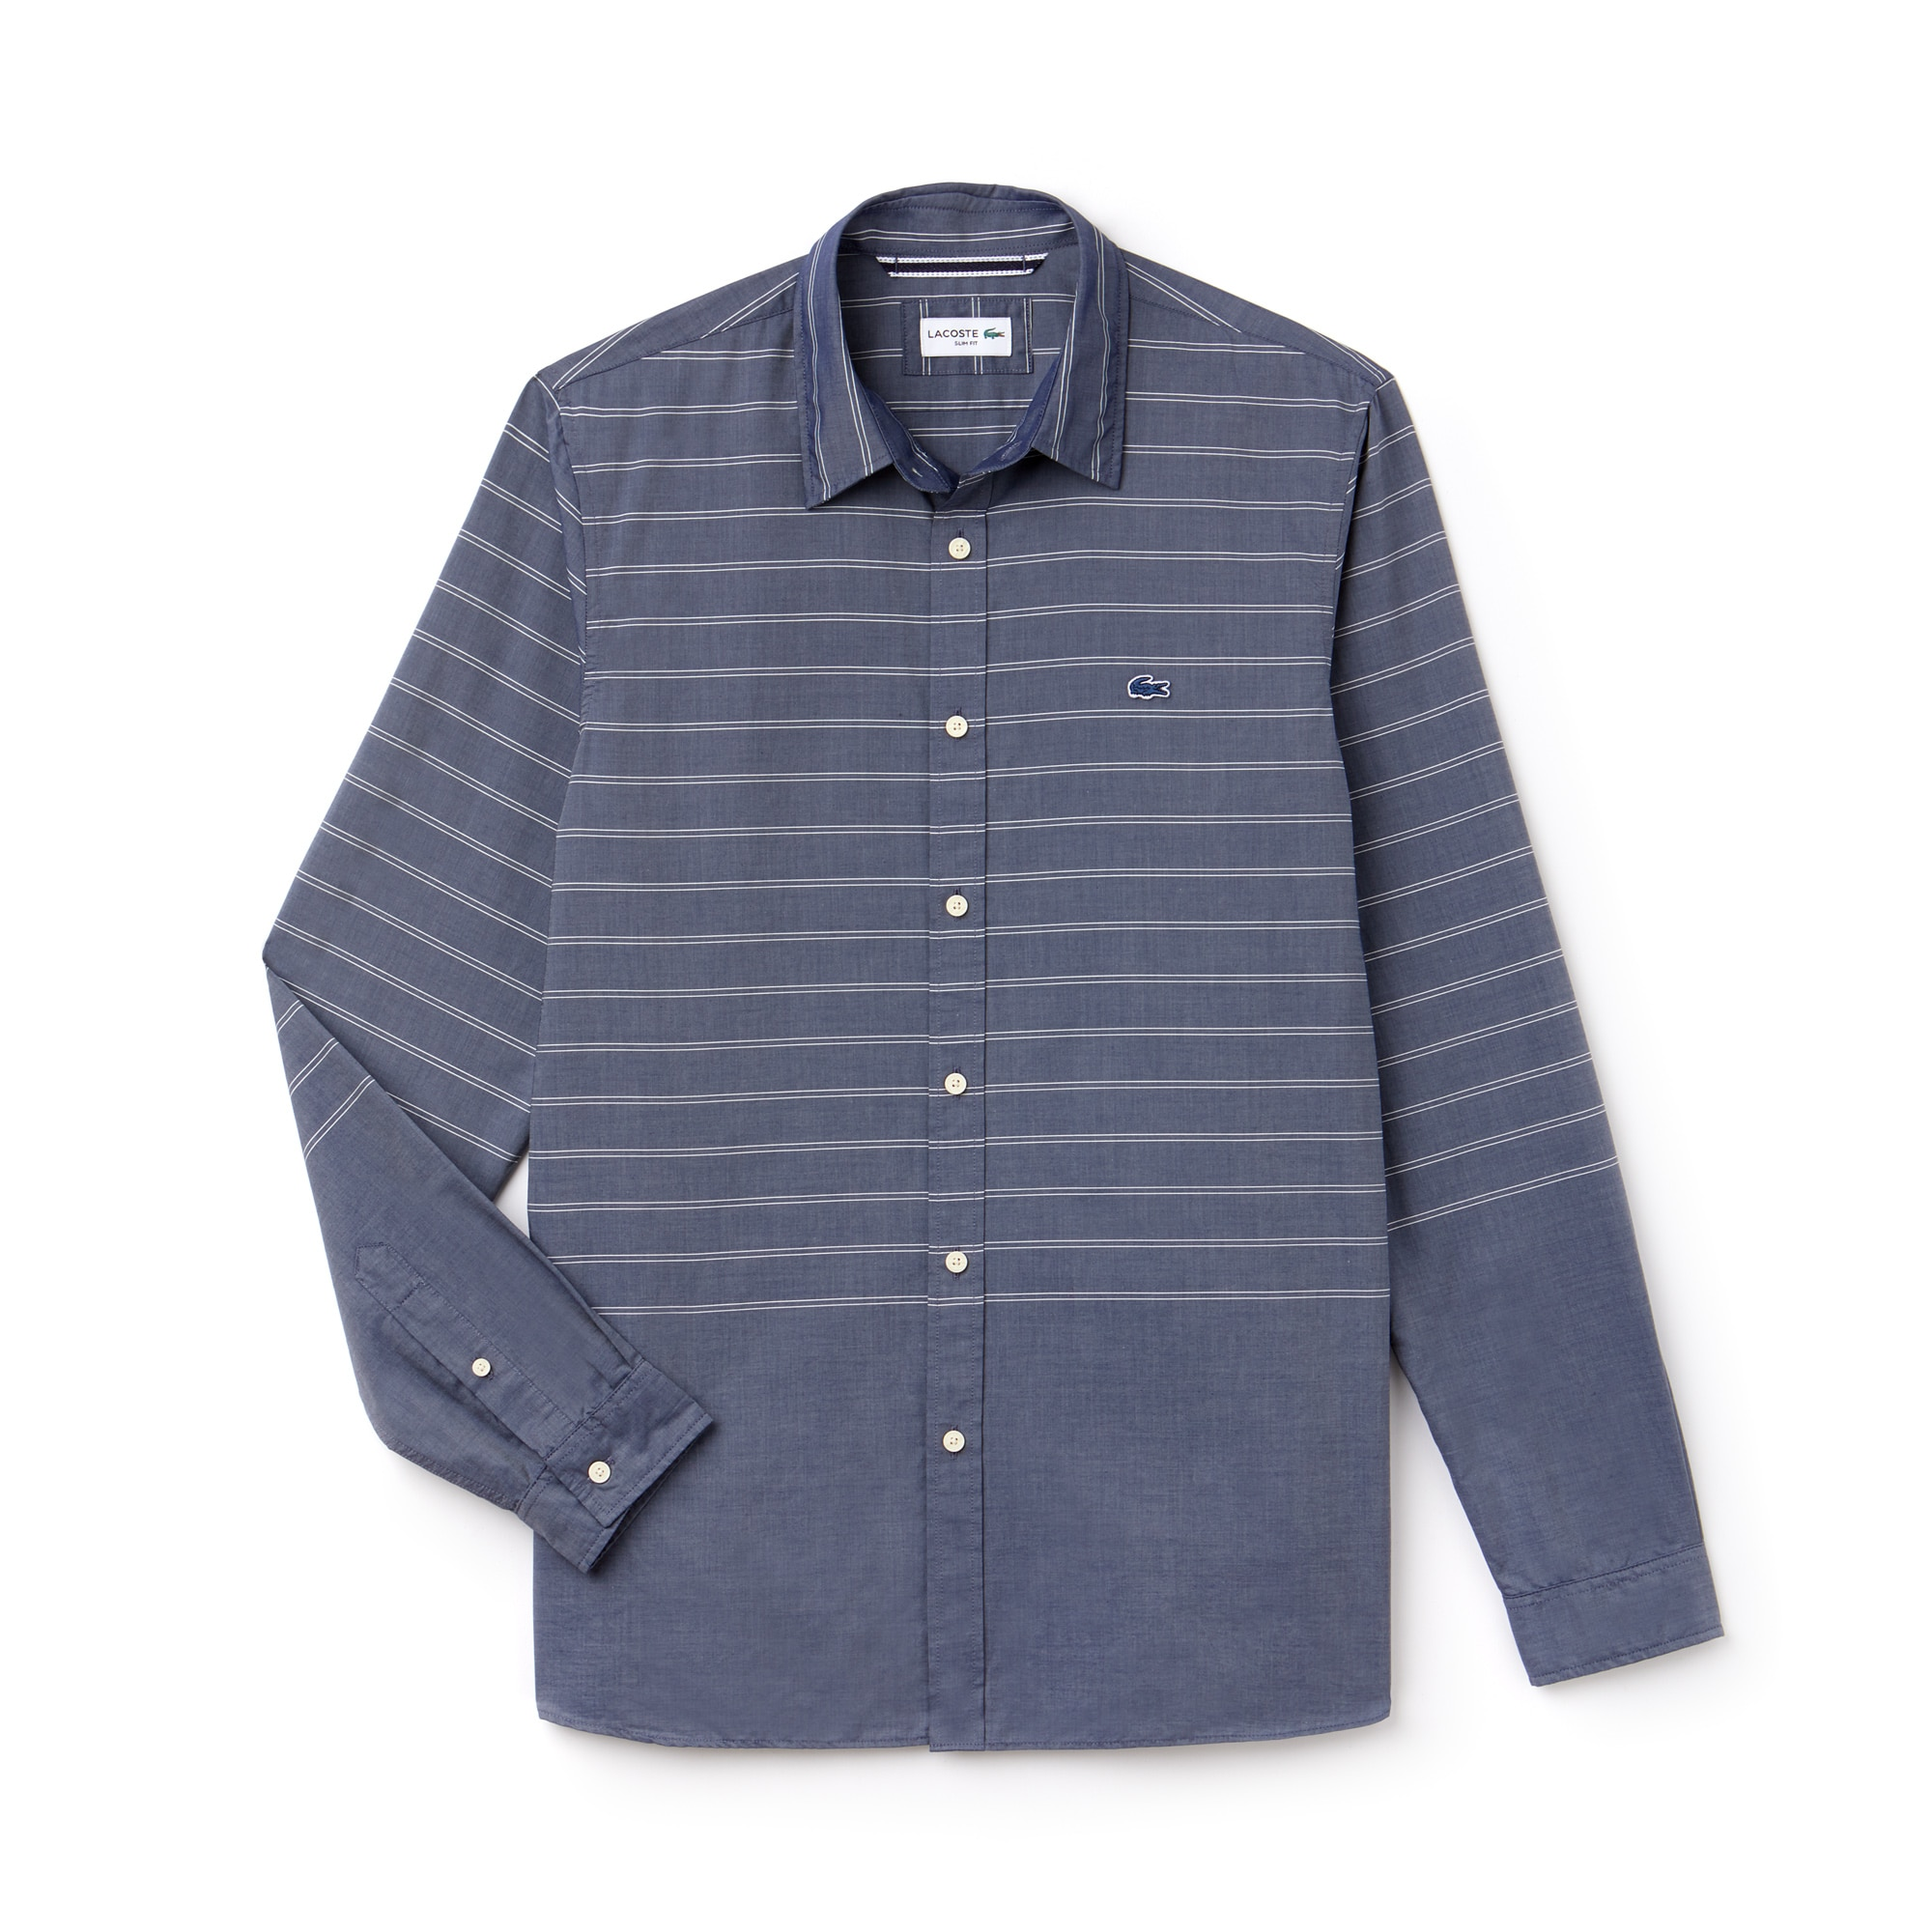 Men's Slim Fit Striped Poplin Shirt